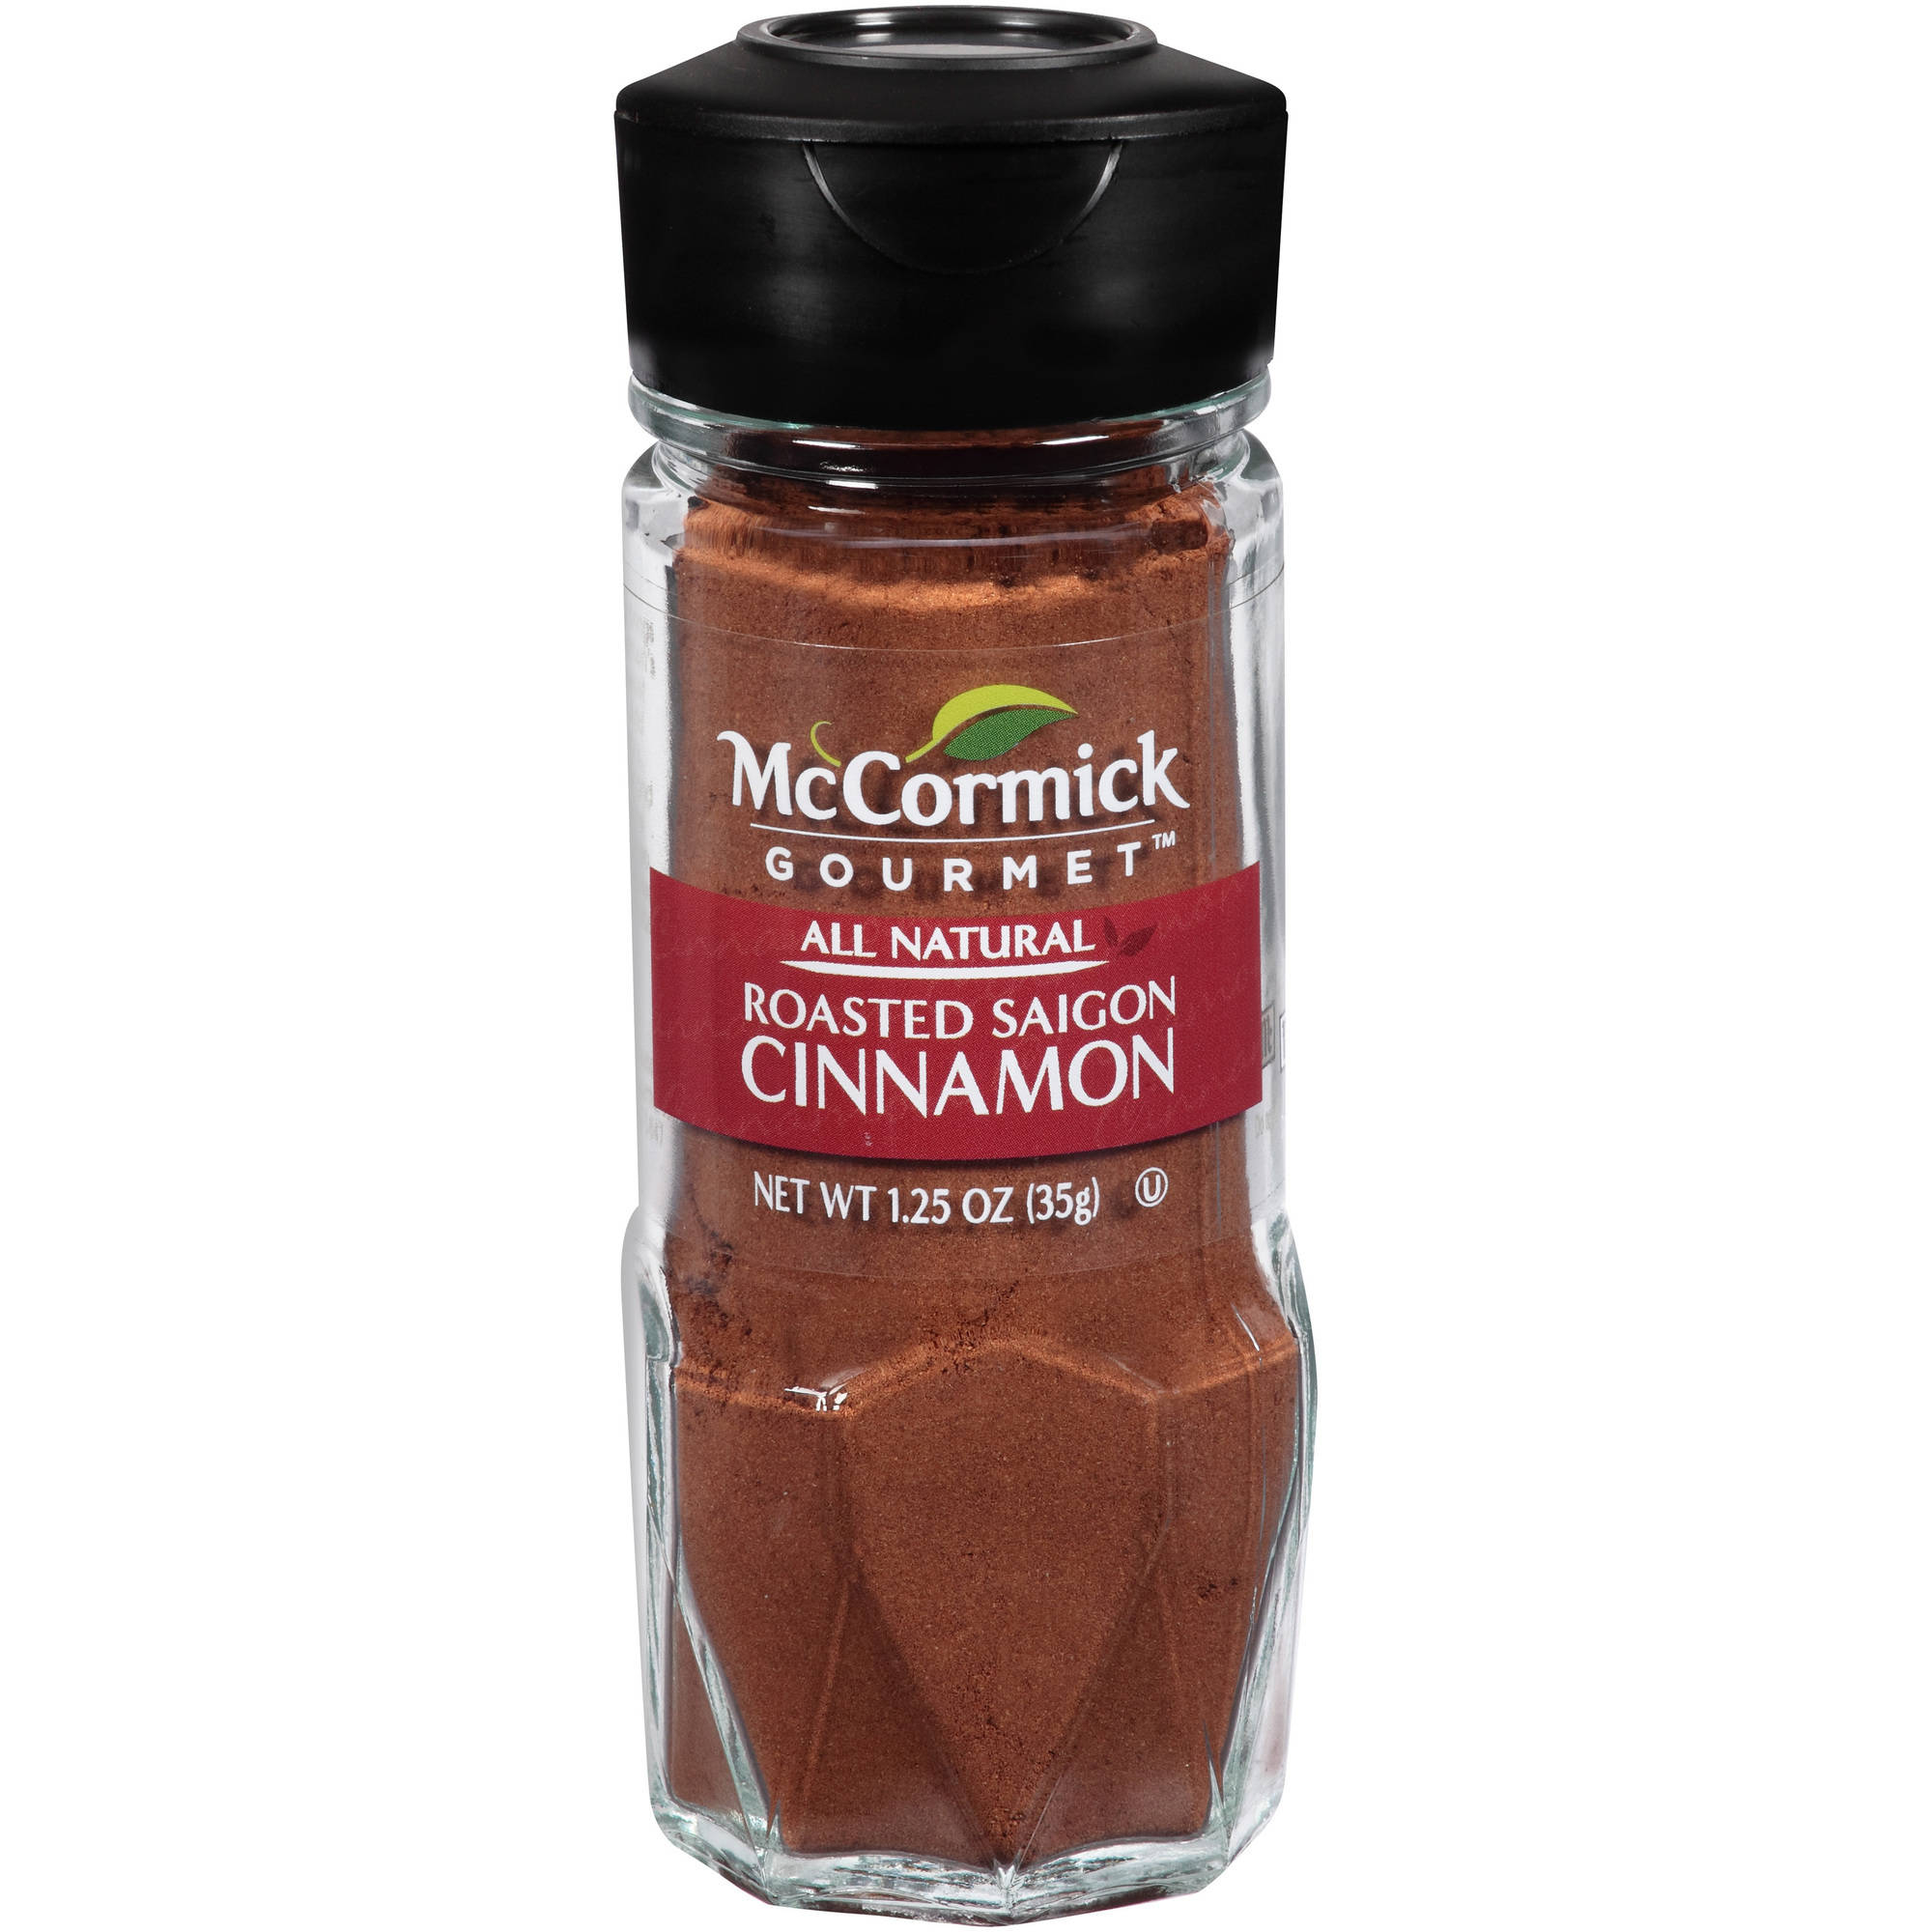 ***Discontinued by CW***McCormick Gourmet Collection Roasted Saigon Cinnamon, 1.25 oz